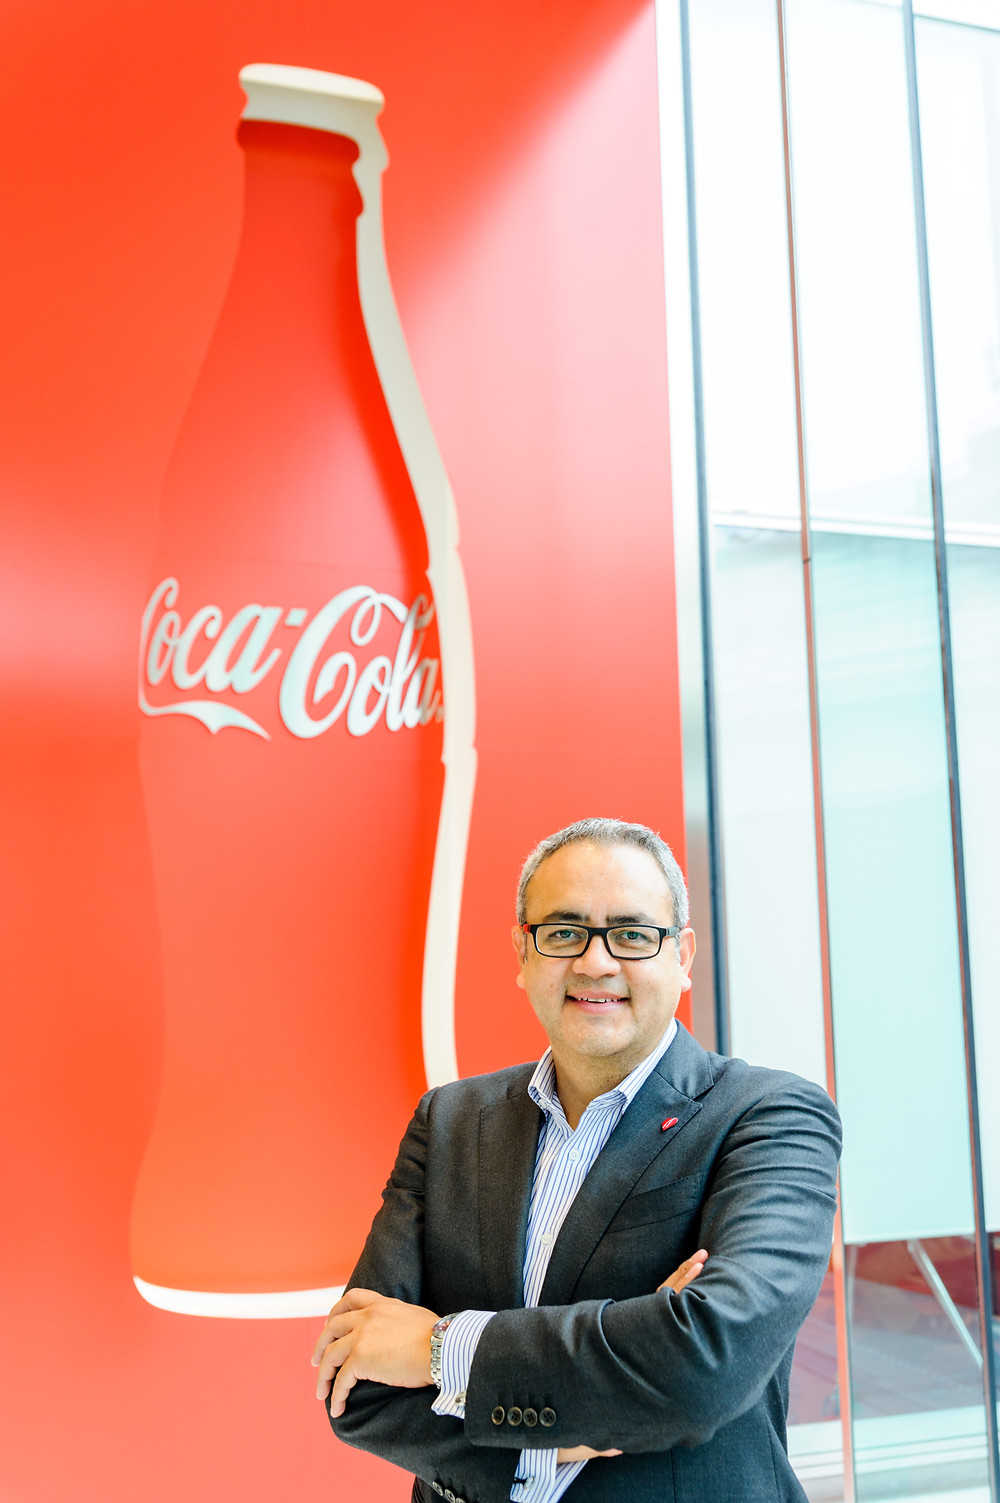 NOVEMBER 2017 BEVERAGE  Innovate & Engage New Coca-Cola Japan president outlines his vision  By C Bryan Jones  One of the best-known brands in the world is Coca-Cola. The soft drink first served on May 8, 1886, at Jacob's Pharmacy in Atlanta, Ga. has bubbled to the top over the past 131 years. In 2017, Coca-Cola is the world's fourth most-valuable brand at $69.7 billion according to Interbrand's Best Global Brands ranking.  Some may not realize the extent to which Japan plays a role in this success. The ACCJ Journal sat down with new Coca-Cola (Japan) Co., Ltd. President Jorge Garduño to find out why the local market is so important and how the company is making a difference in the community.  https://journal.accj.or.jp/innovative-engage/    The ACCJ - 在日米国商工会議所  http://www.accj.or.jp